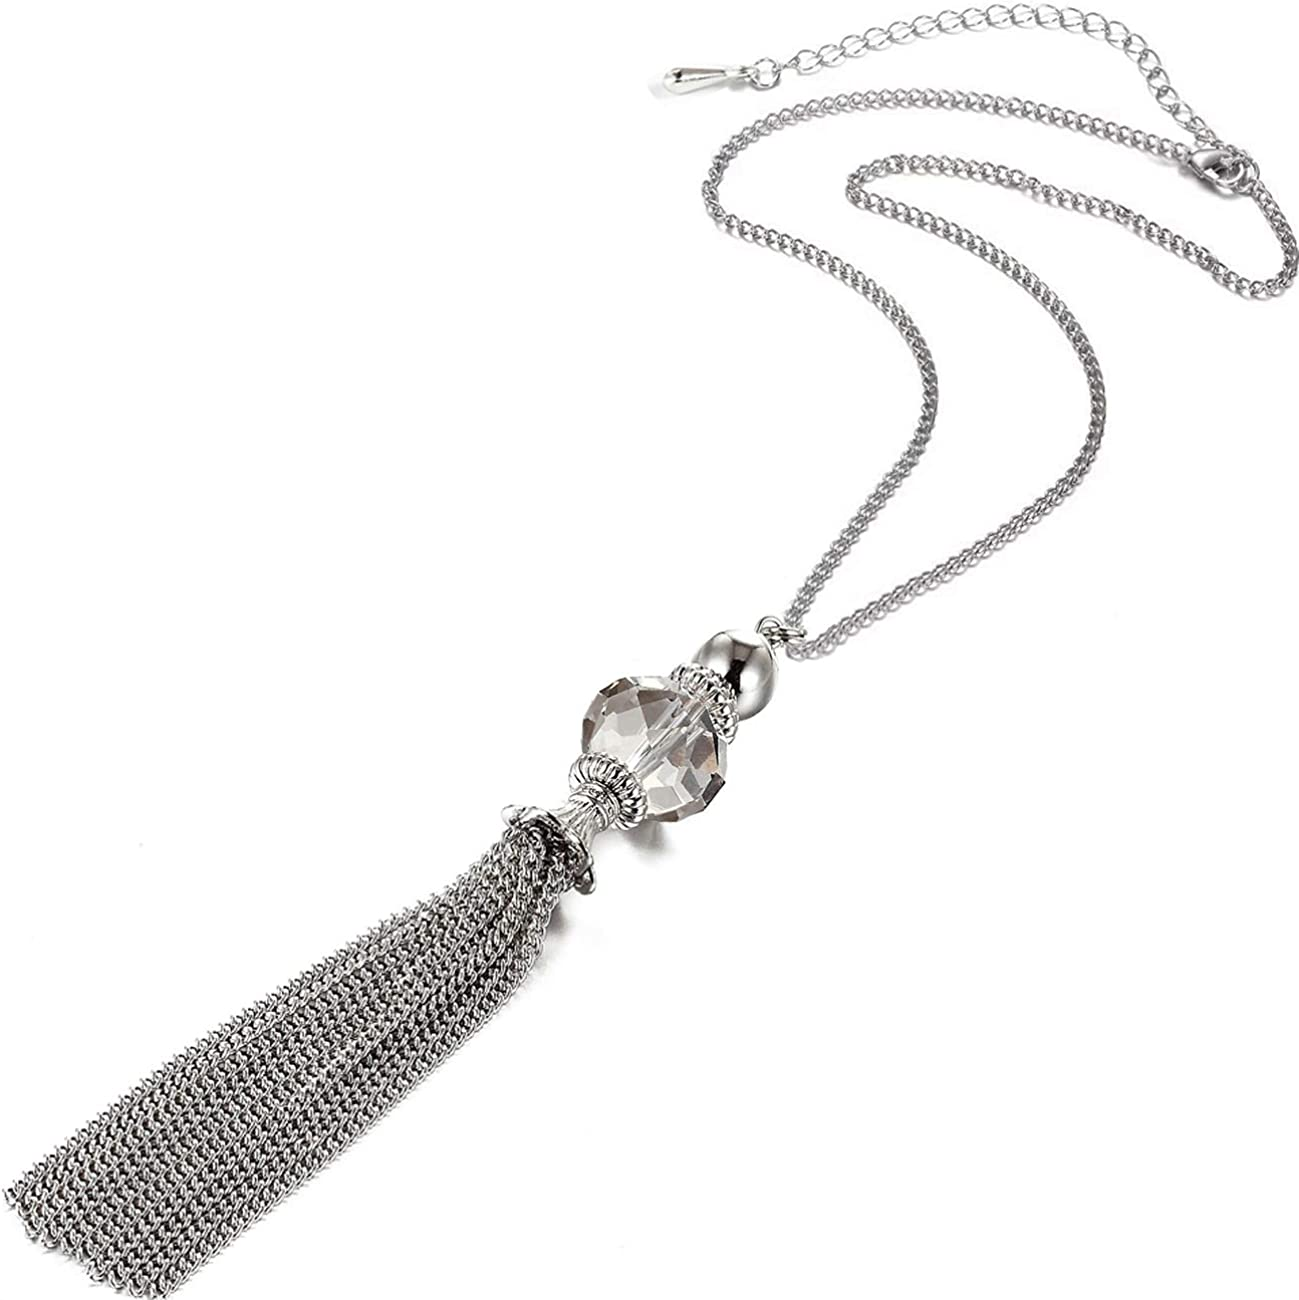 Luckyse Long Necklaces...